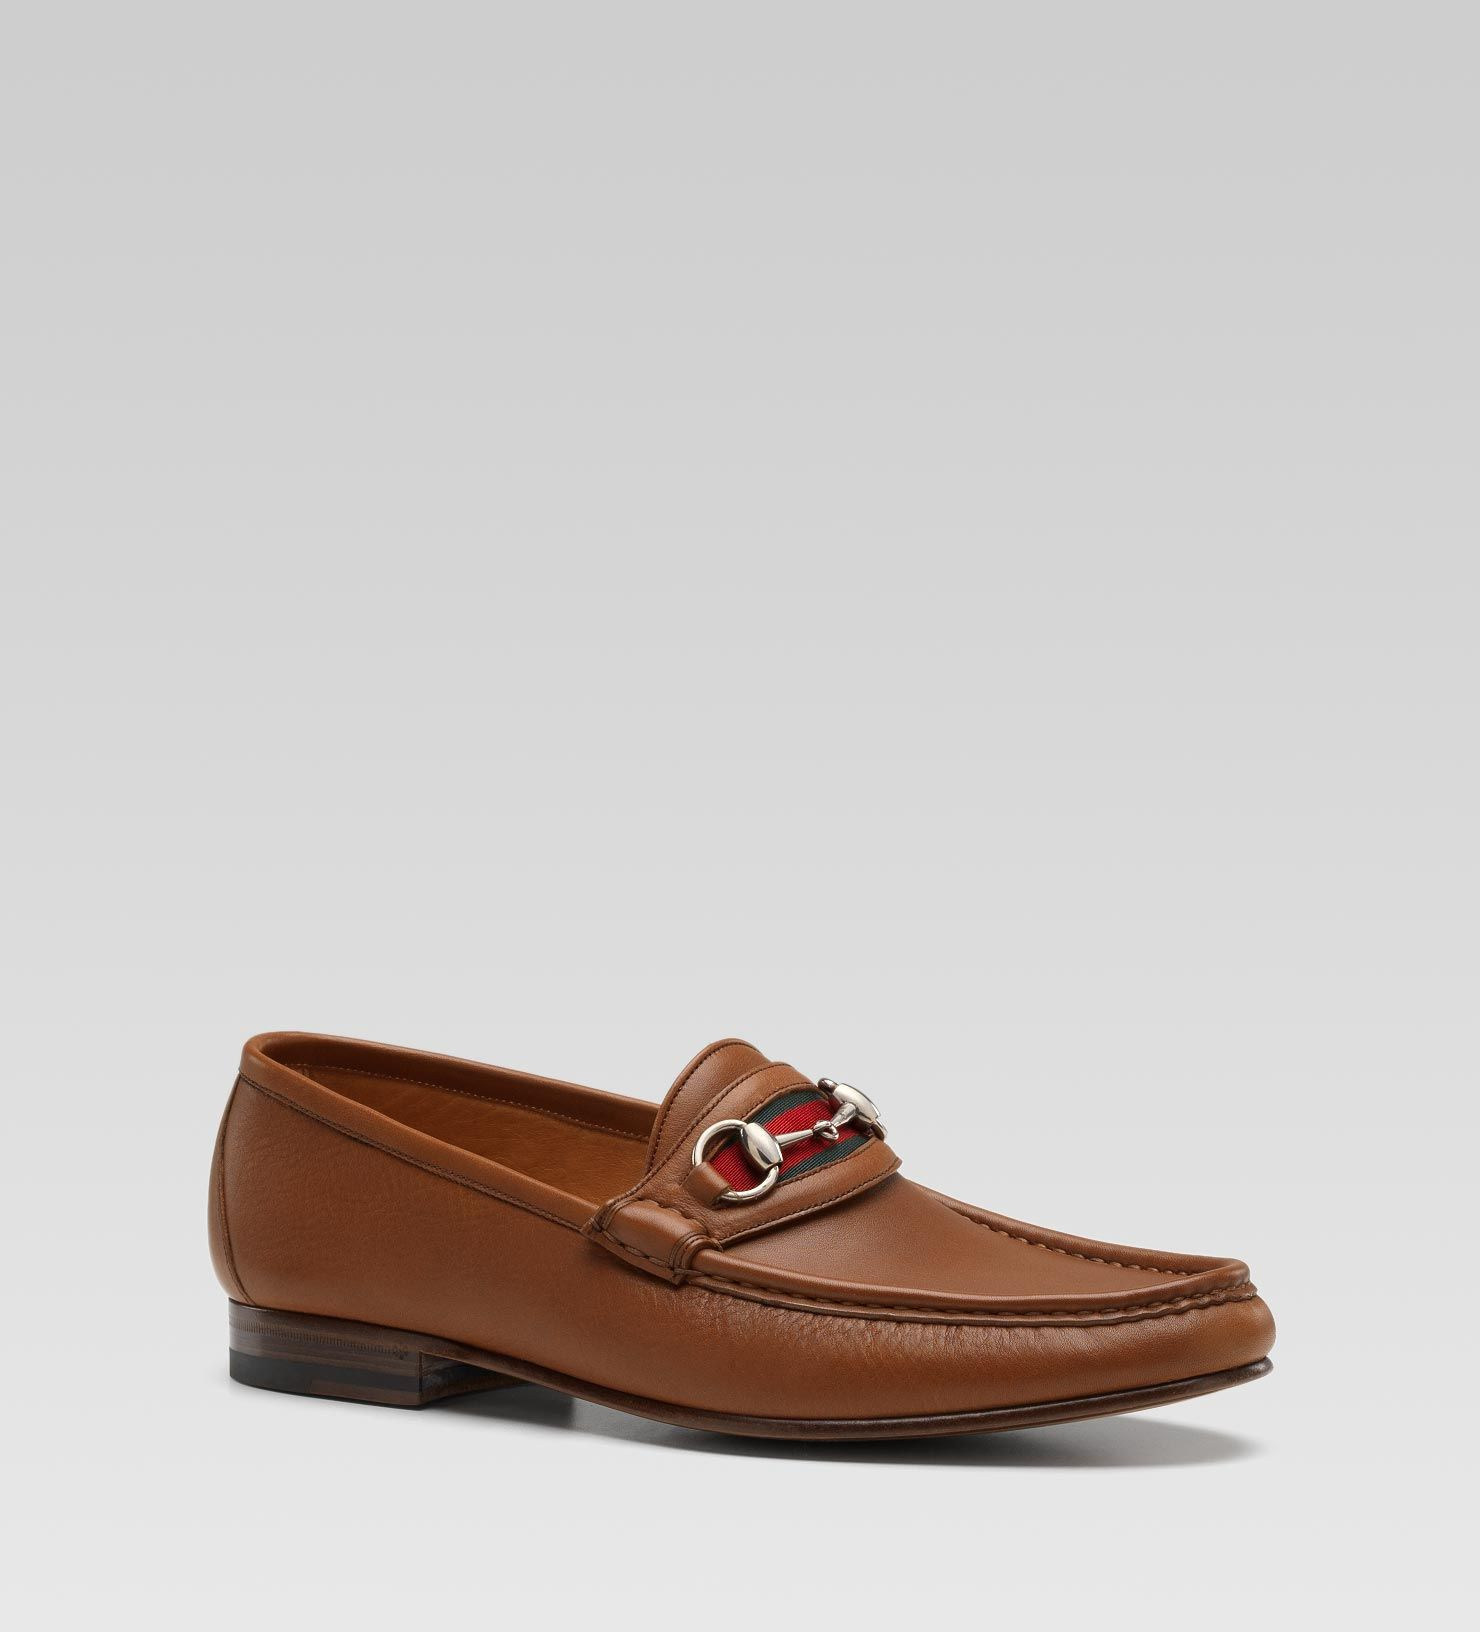 862ea96779 Gucci Moccasin with Horsbit and Signature Web